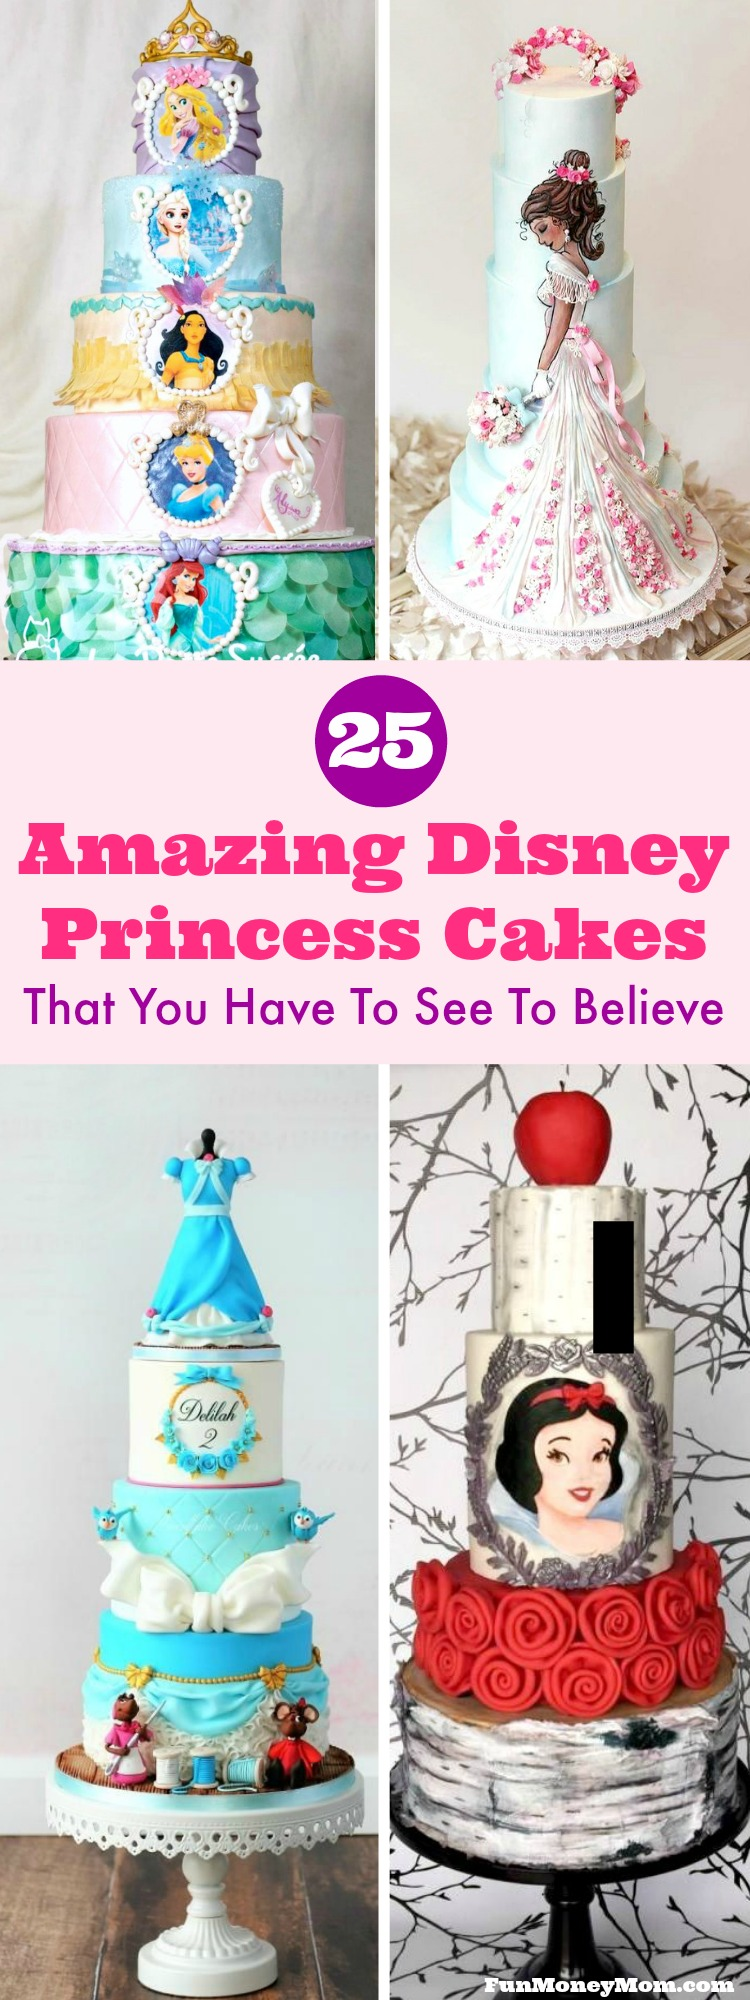 Disney Princess Cake - Throwing a princess party for your little one? You're going to need a birthday cake and these amazing Disney princess cakes will definitely inspire you! #princesscake #disneyprincess #birthdaycake #cake